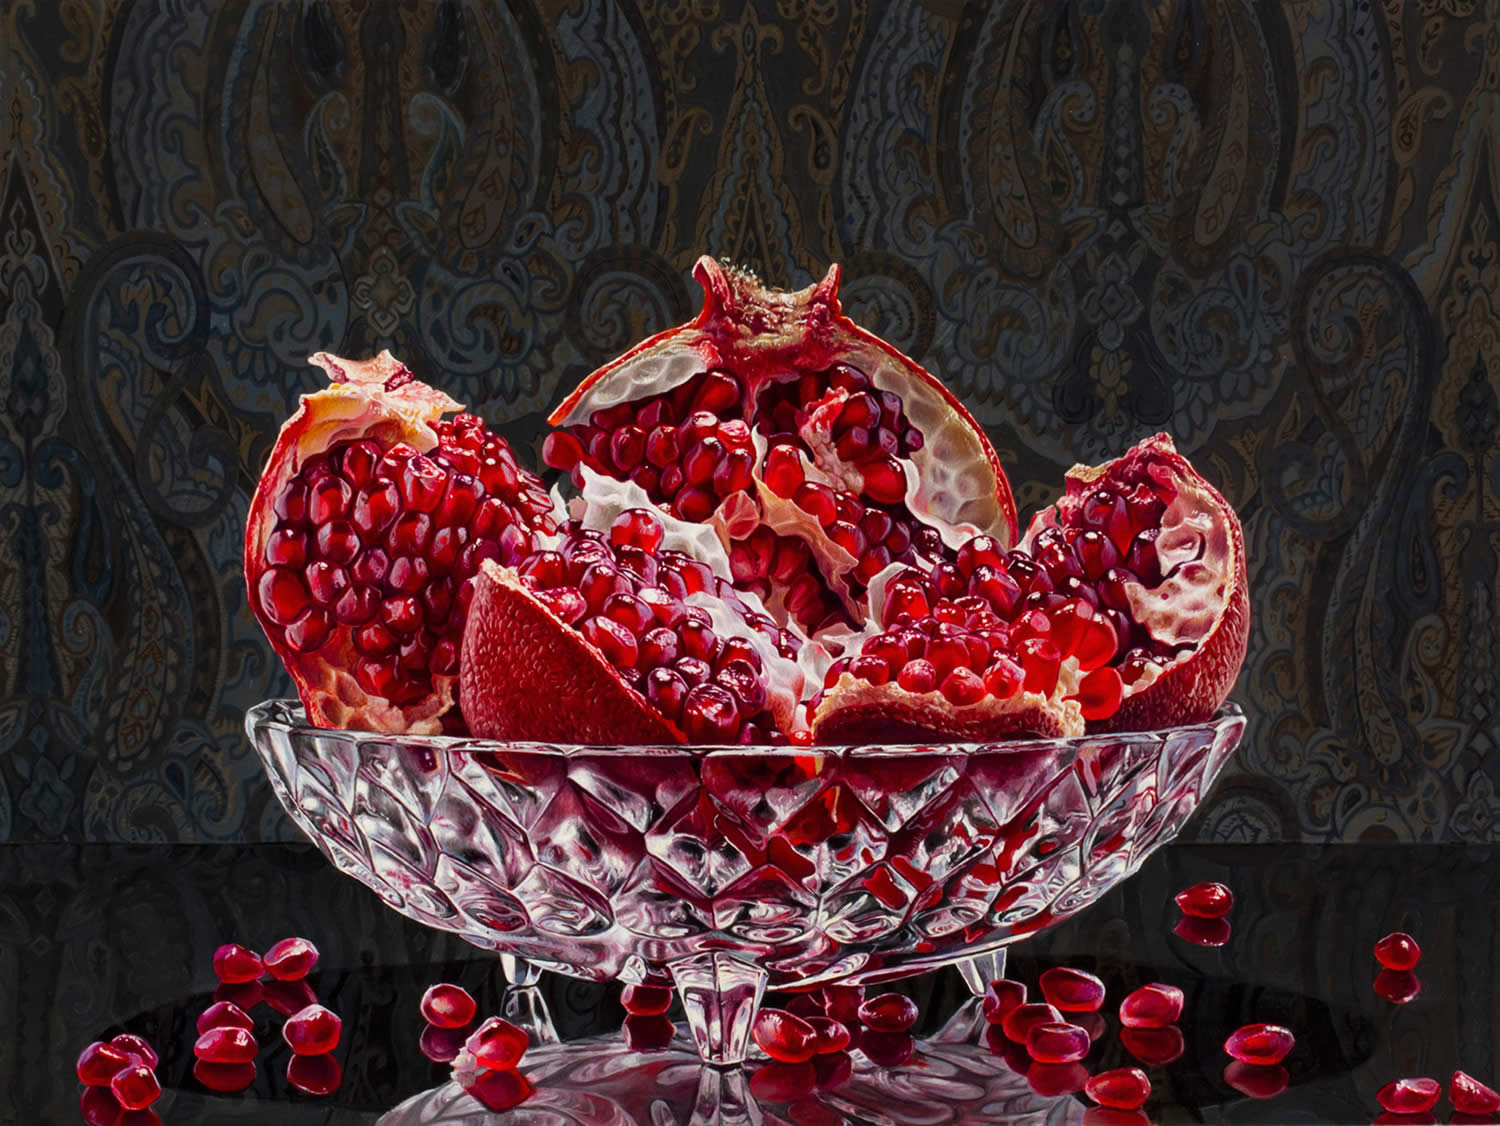 Pomegranate by eric wert